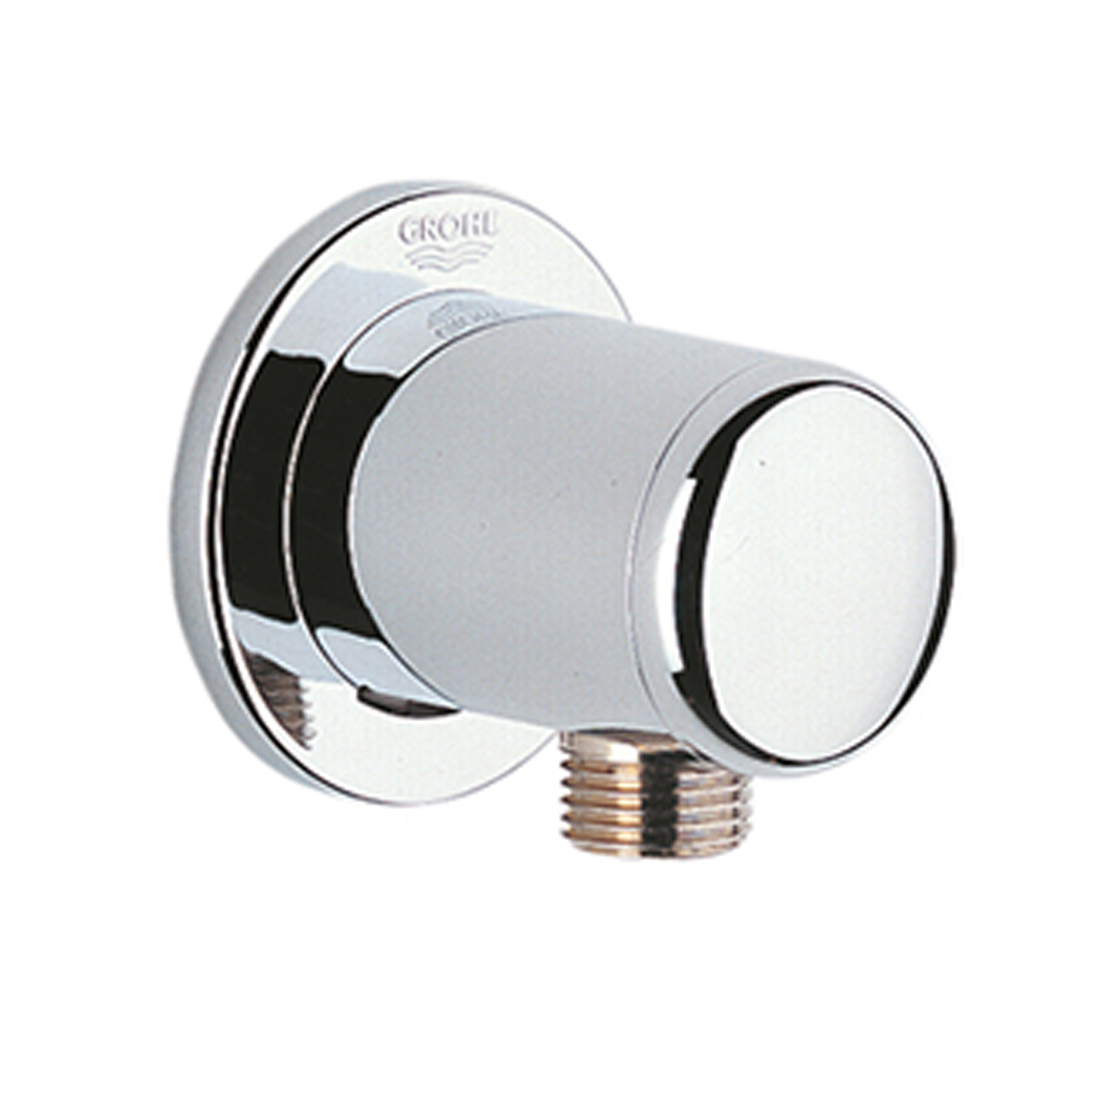 Grohe 28671000 Relexa Shower Outlet Elbow- 1/2